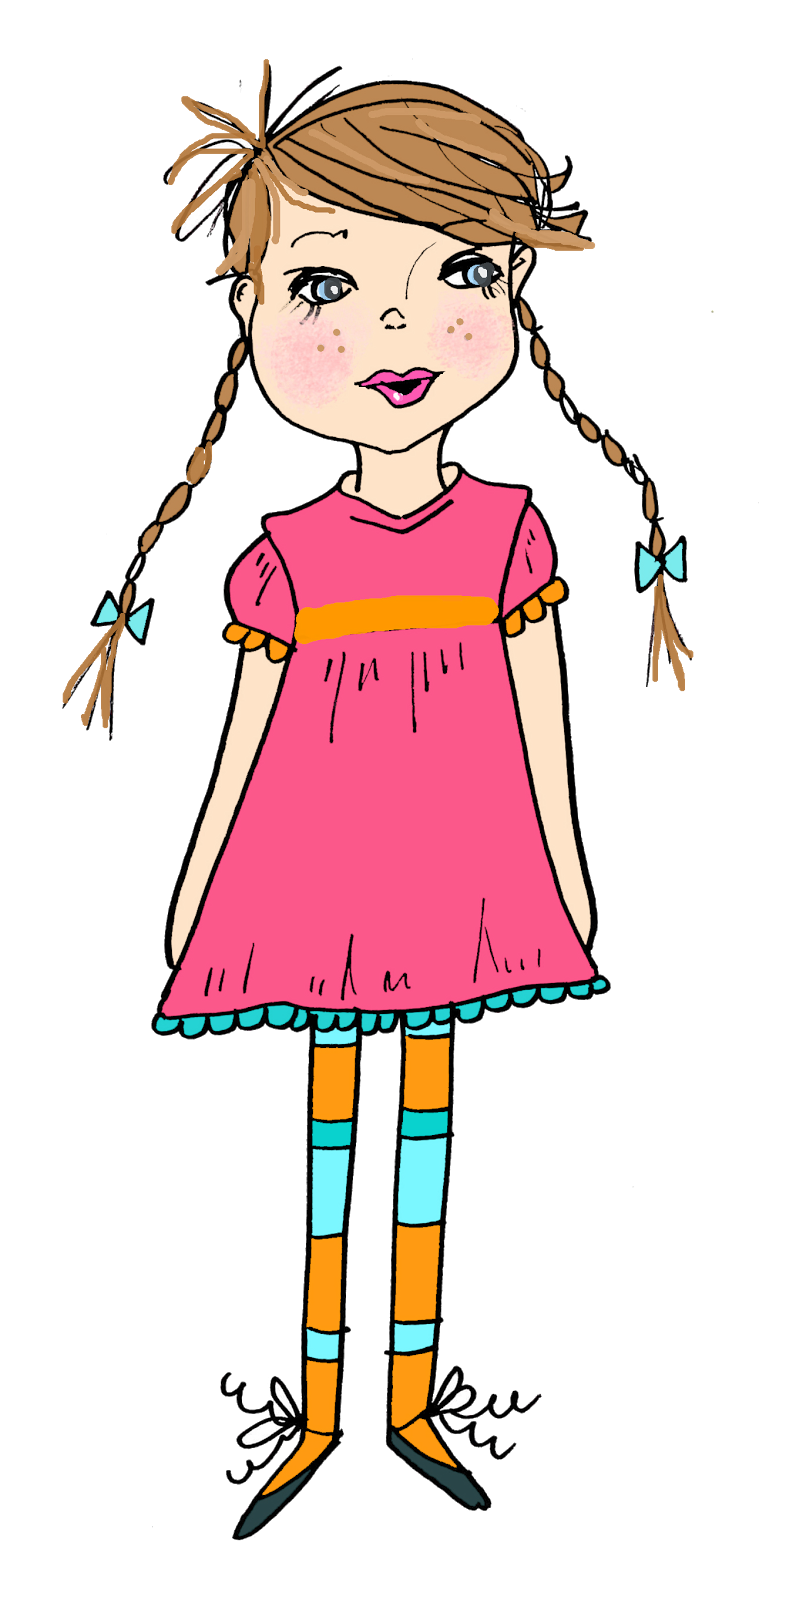 clipart girl images - photo #25